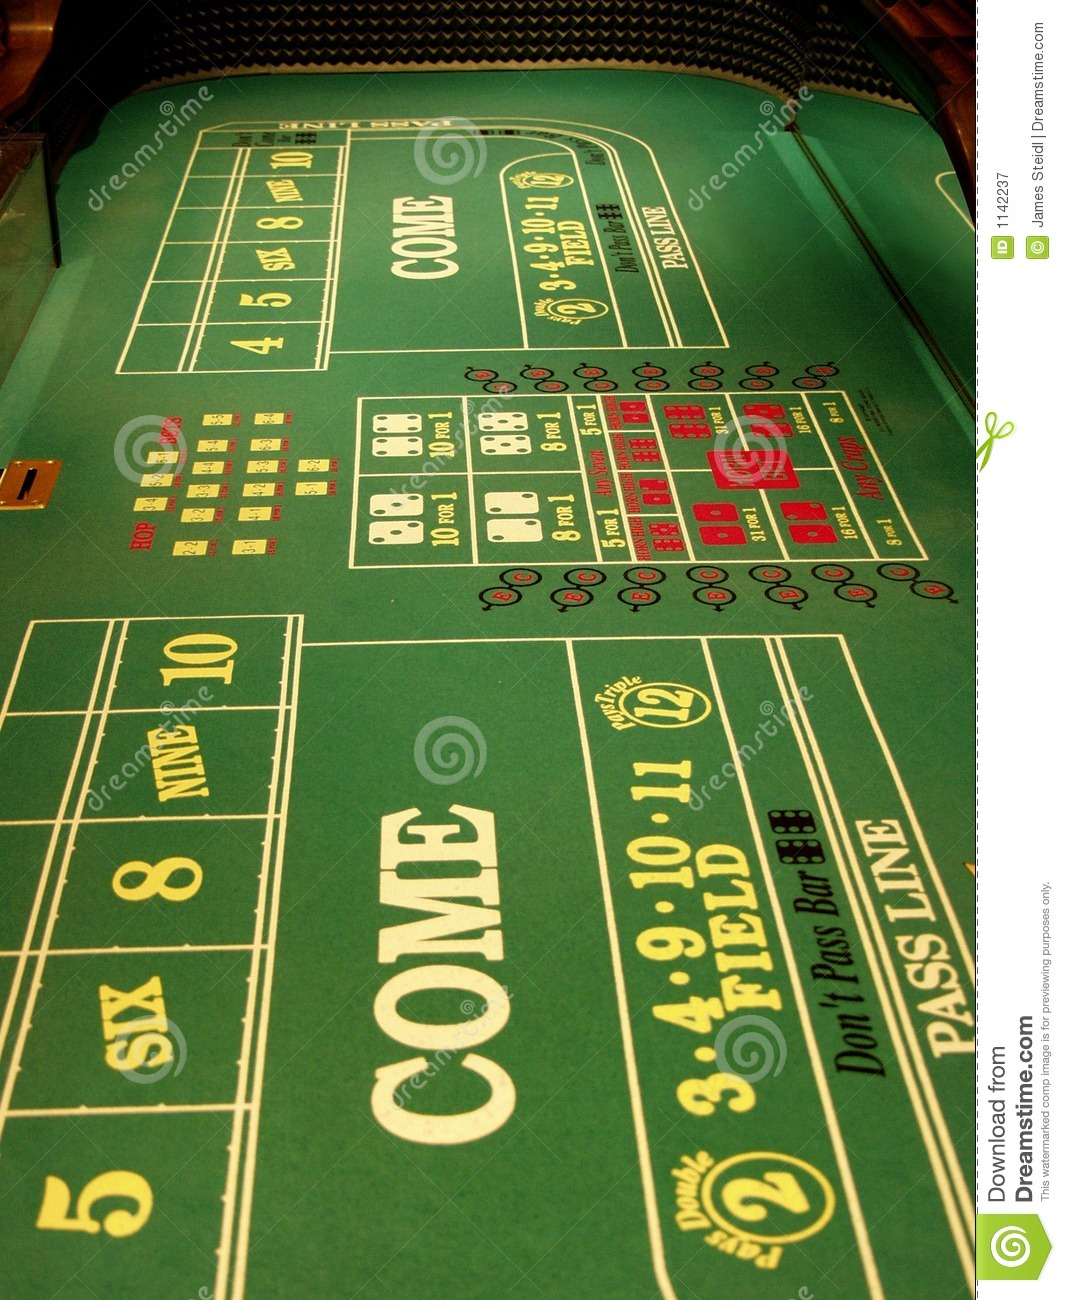 American roulette table buy